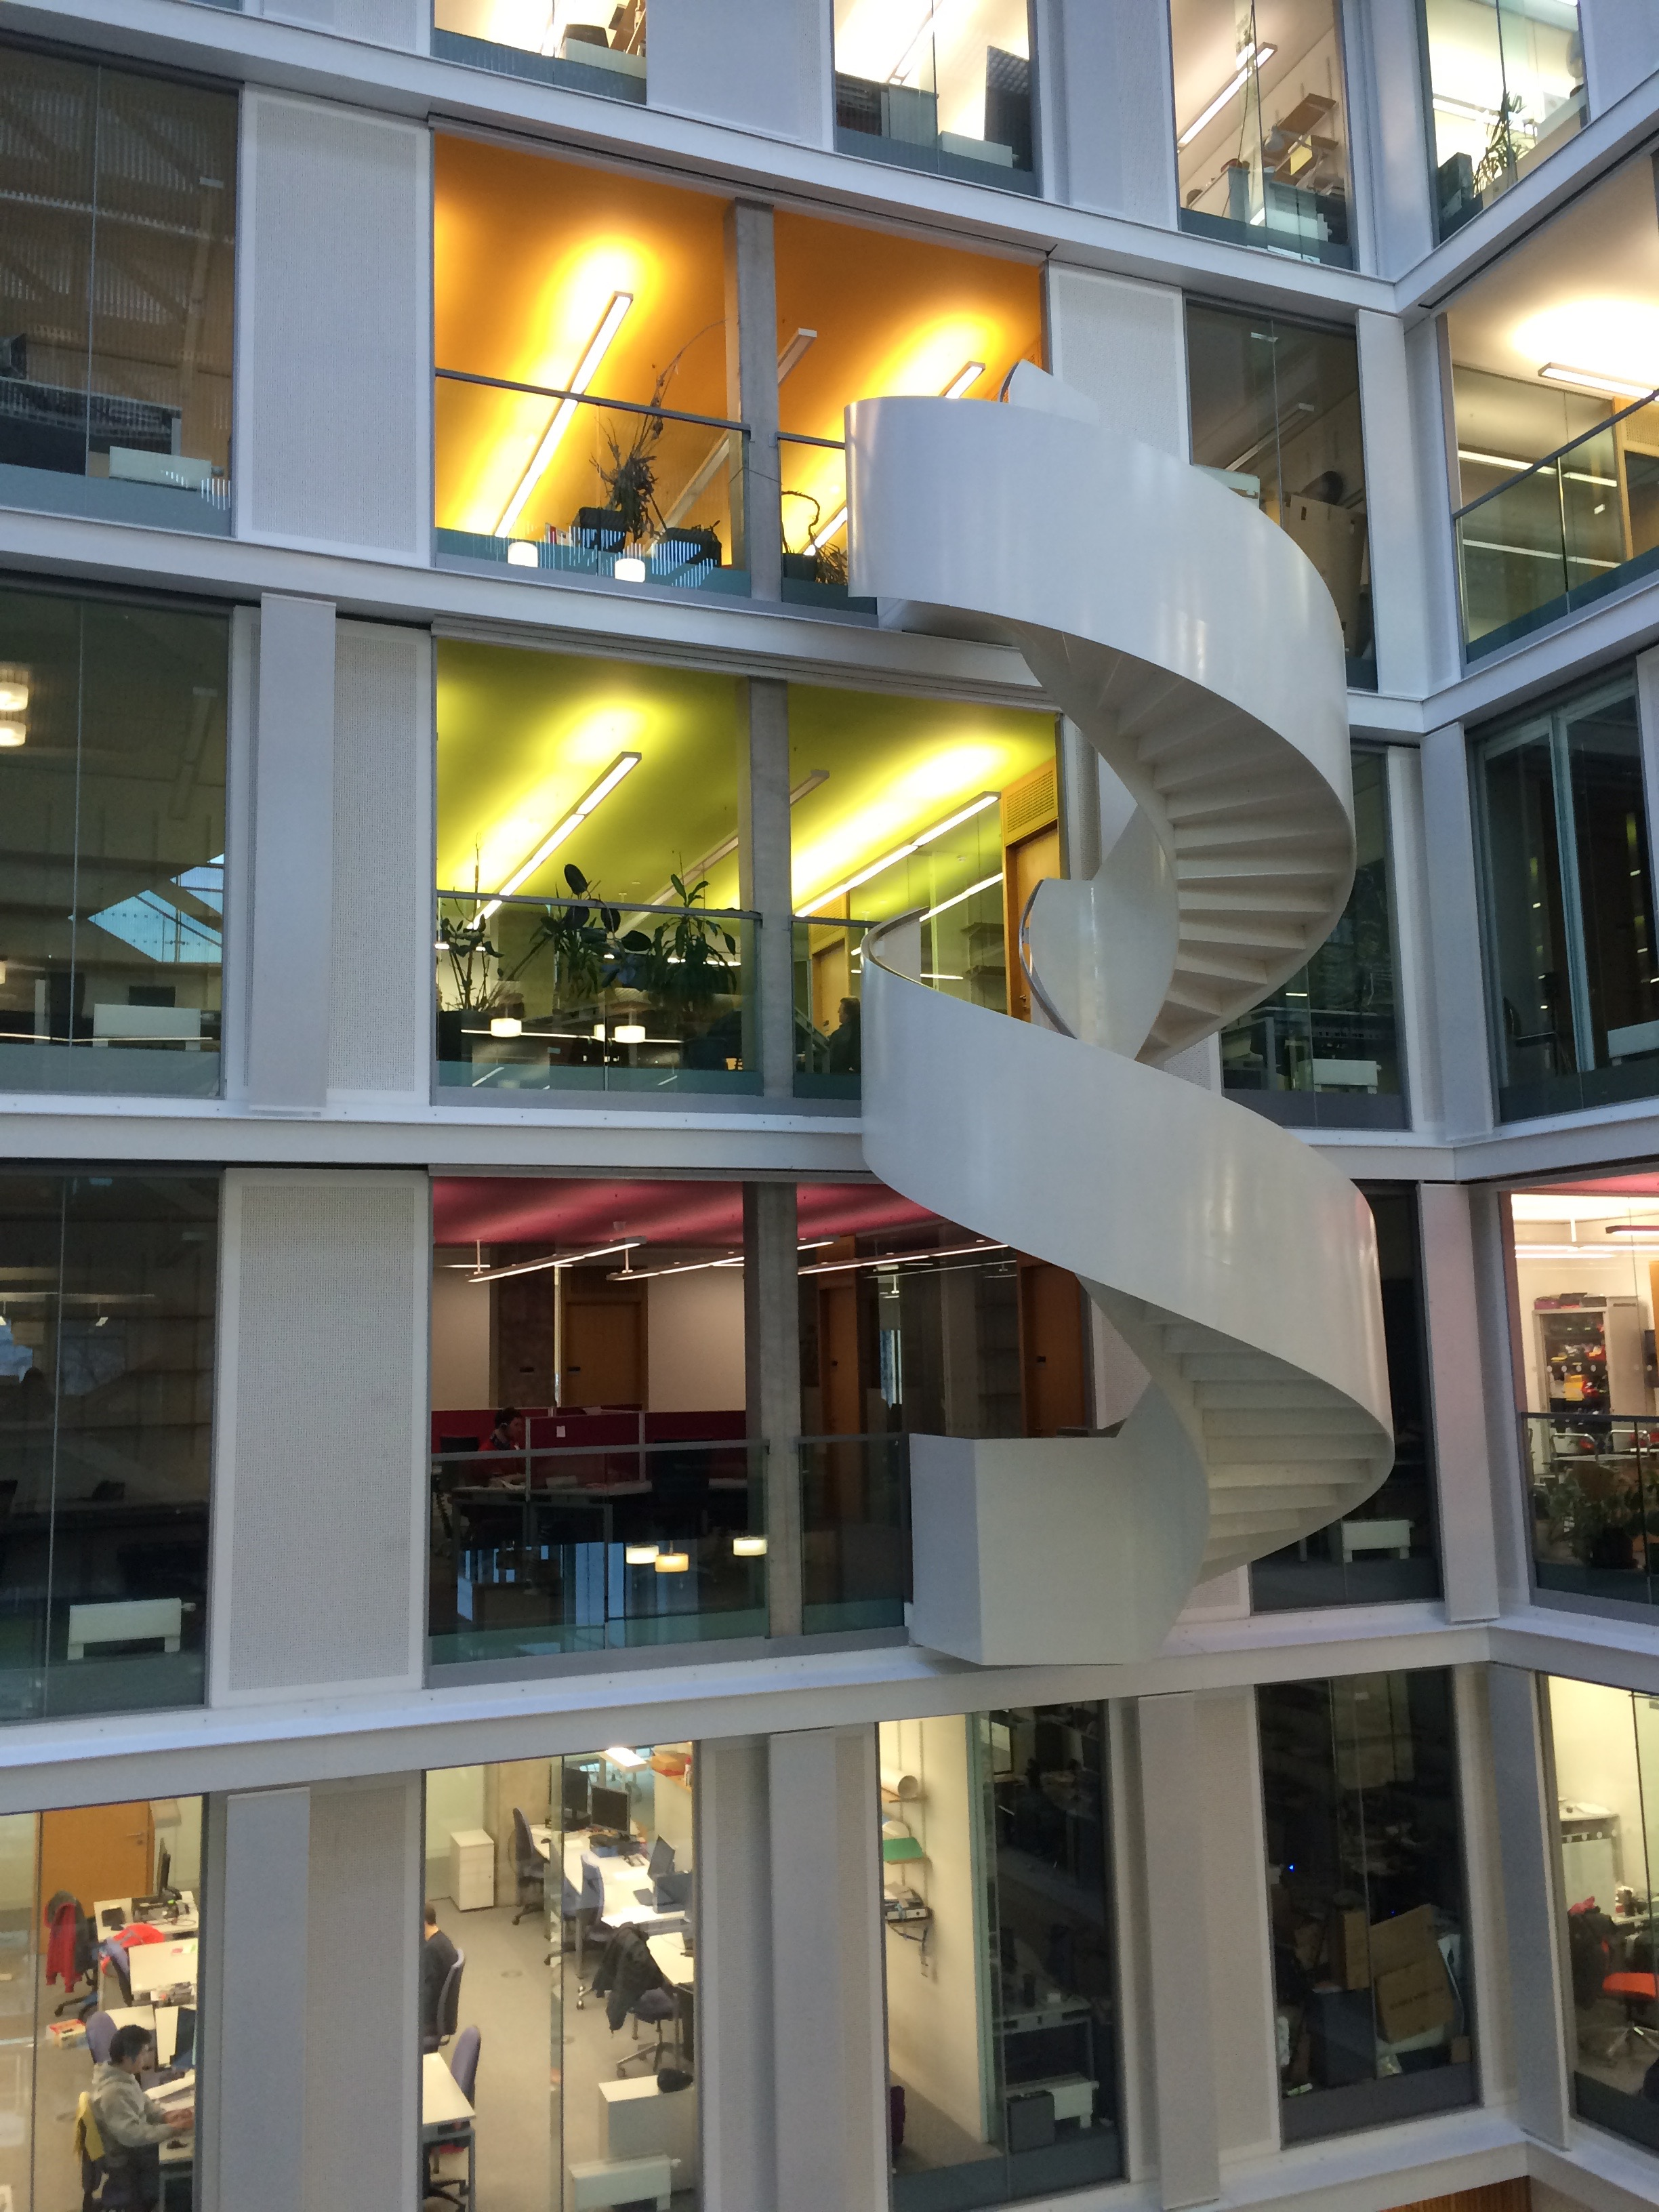 Inside the colorful School of Informatics at Edinburgh